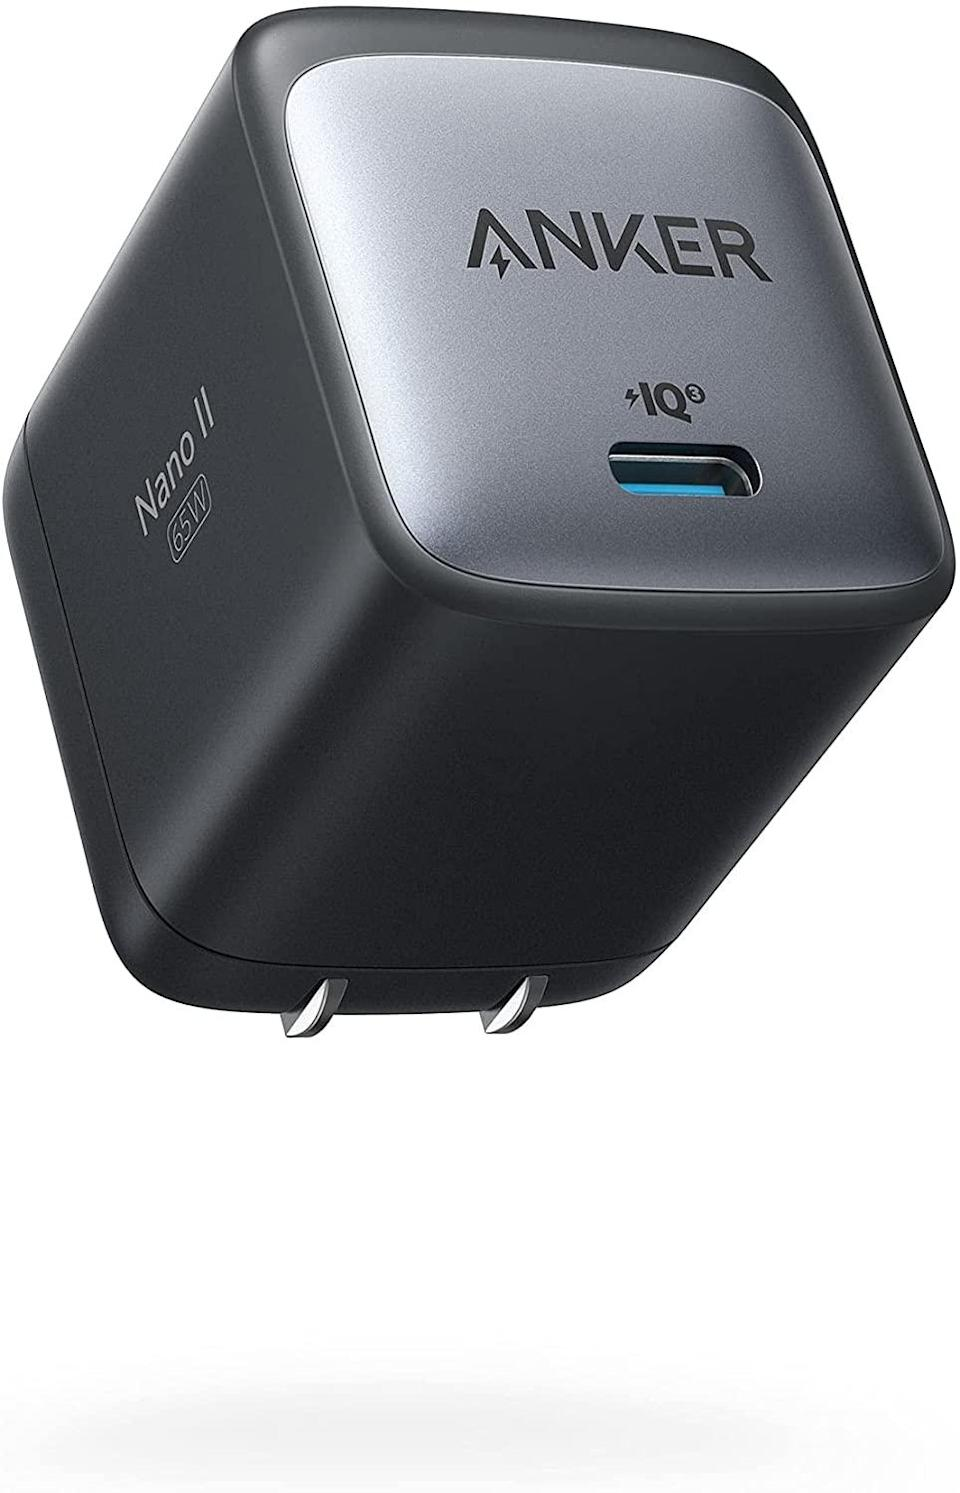 anker nano ii 65W laptop charger, best laptop chargers